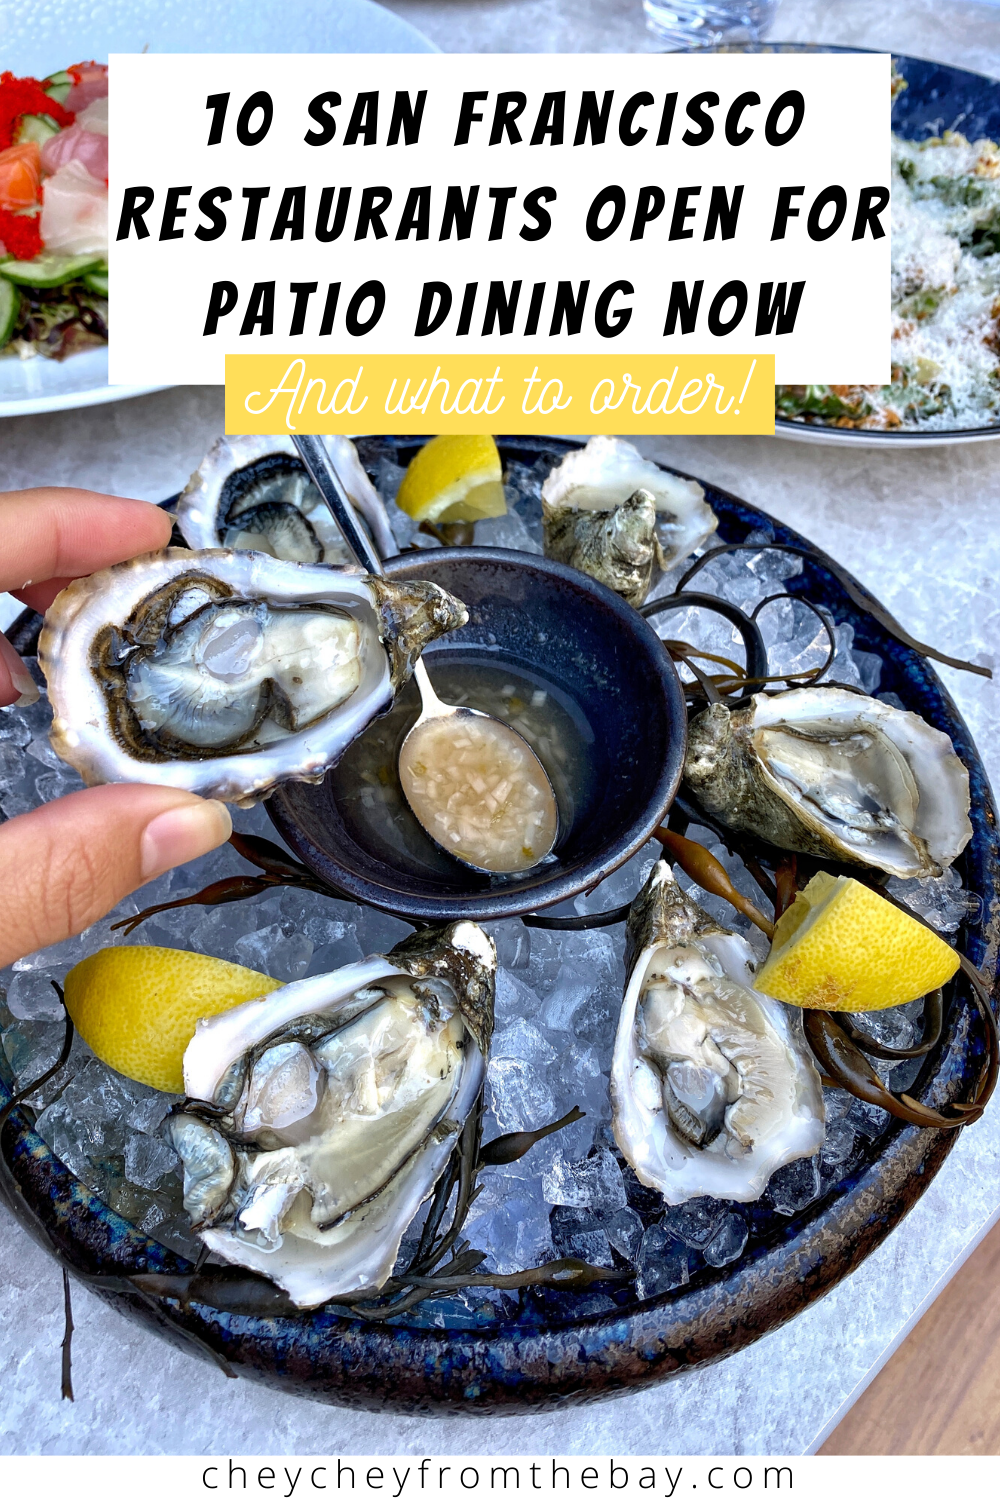 Here are ten delicious restaurants open for patio dining post-coronavirus -- and what to order at each!